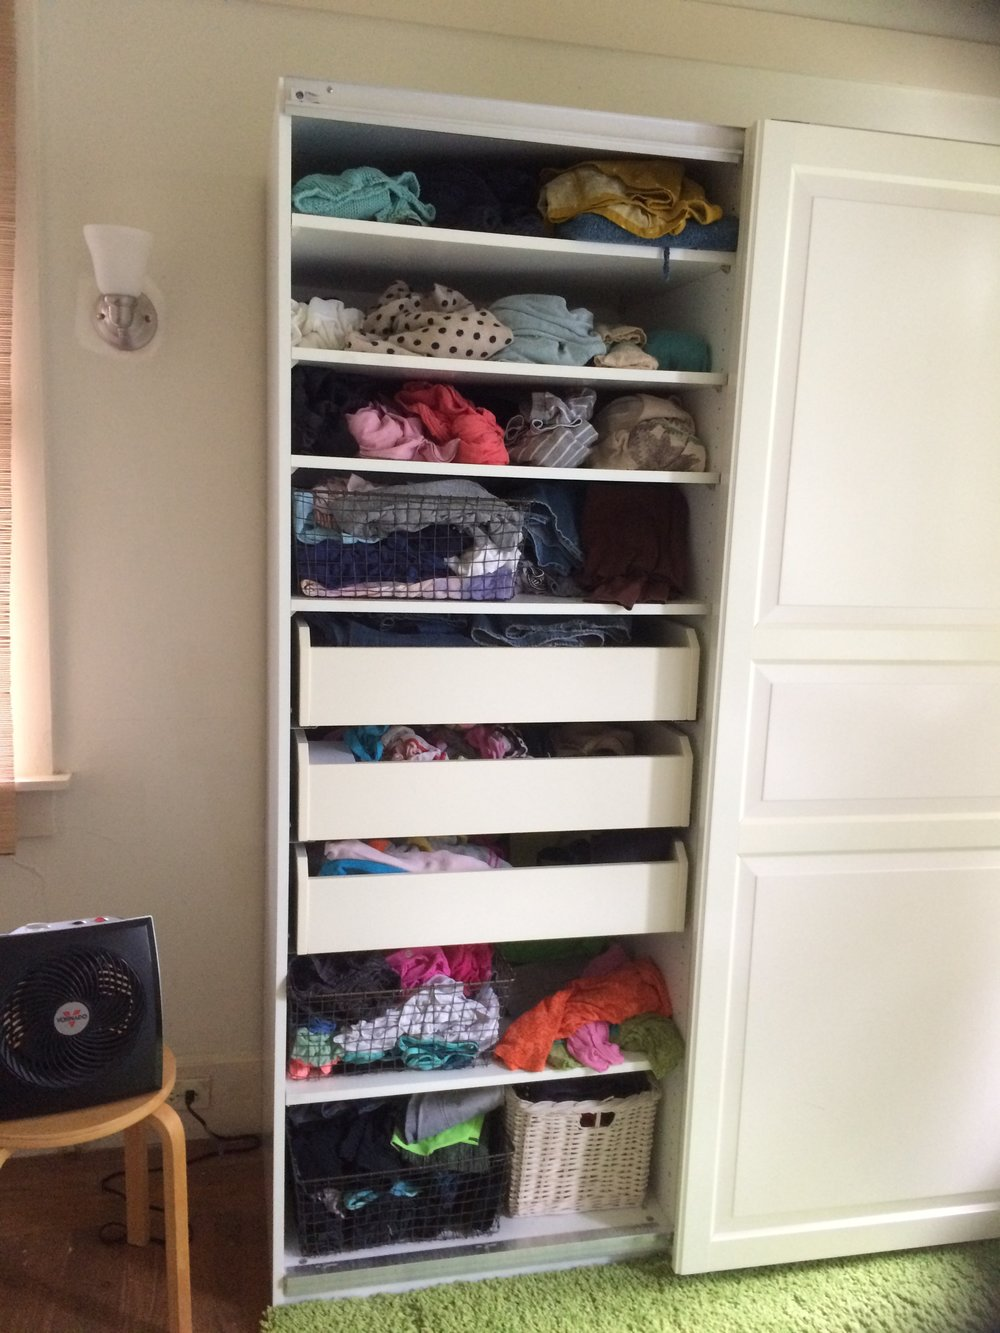 My side of the bedroom armoire.